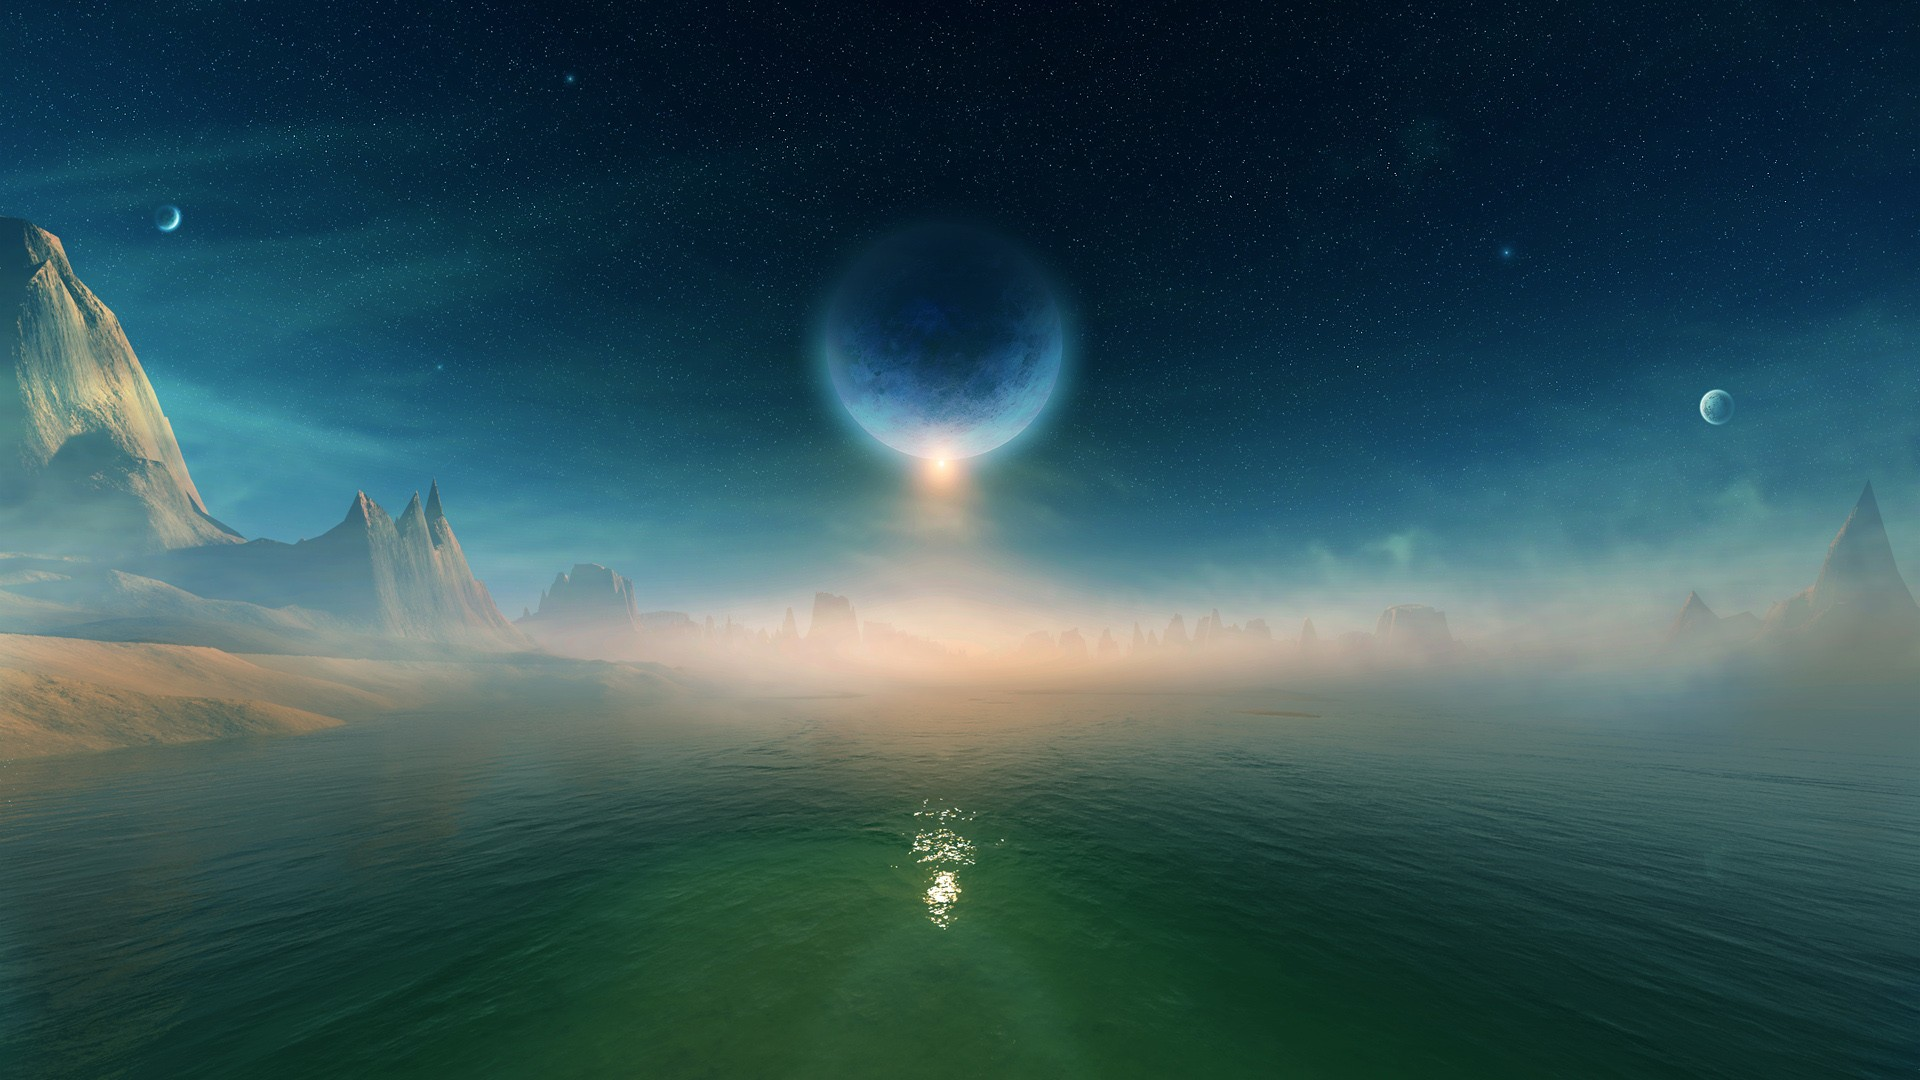 Hd Wallpapers For Widescreen Monitor Eclipse Galaxy Wallpapers Hd Wallpapers Id 16691